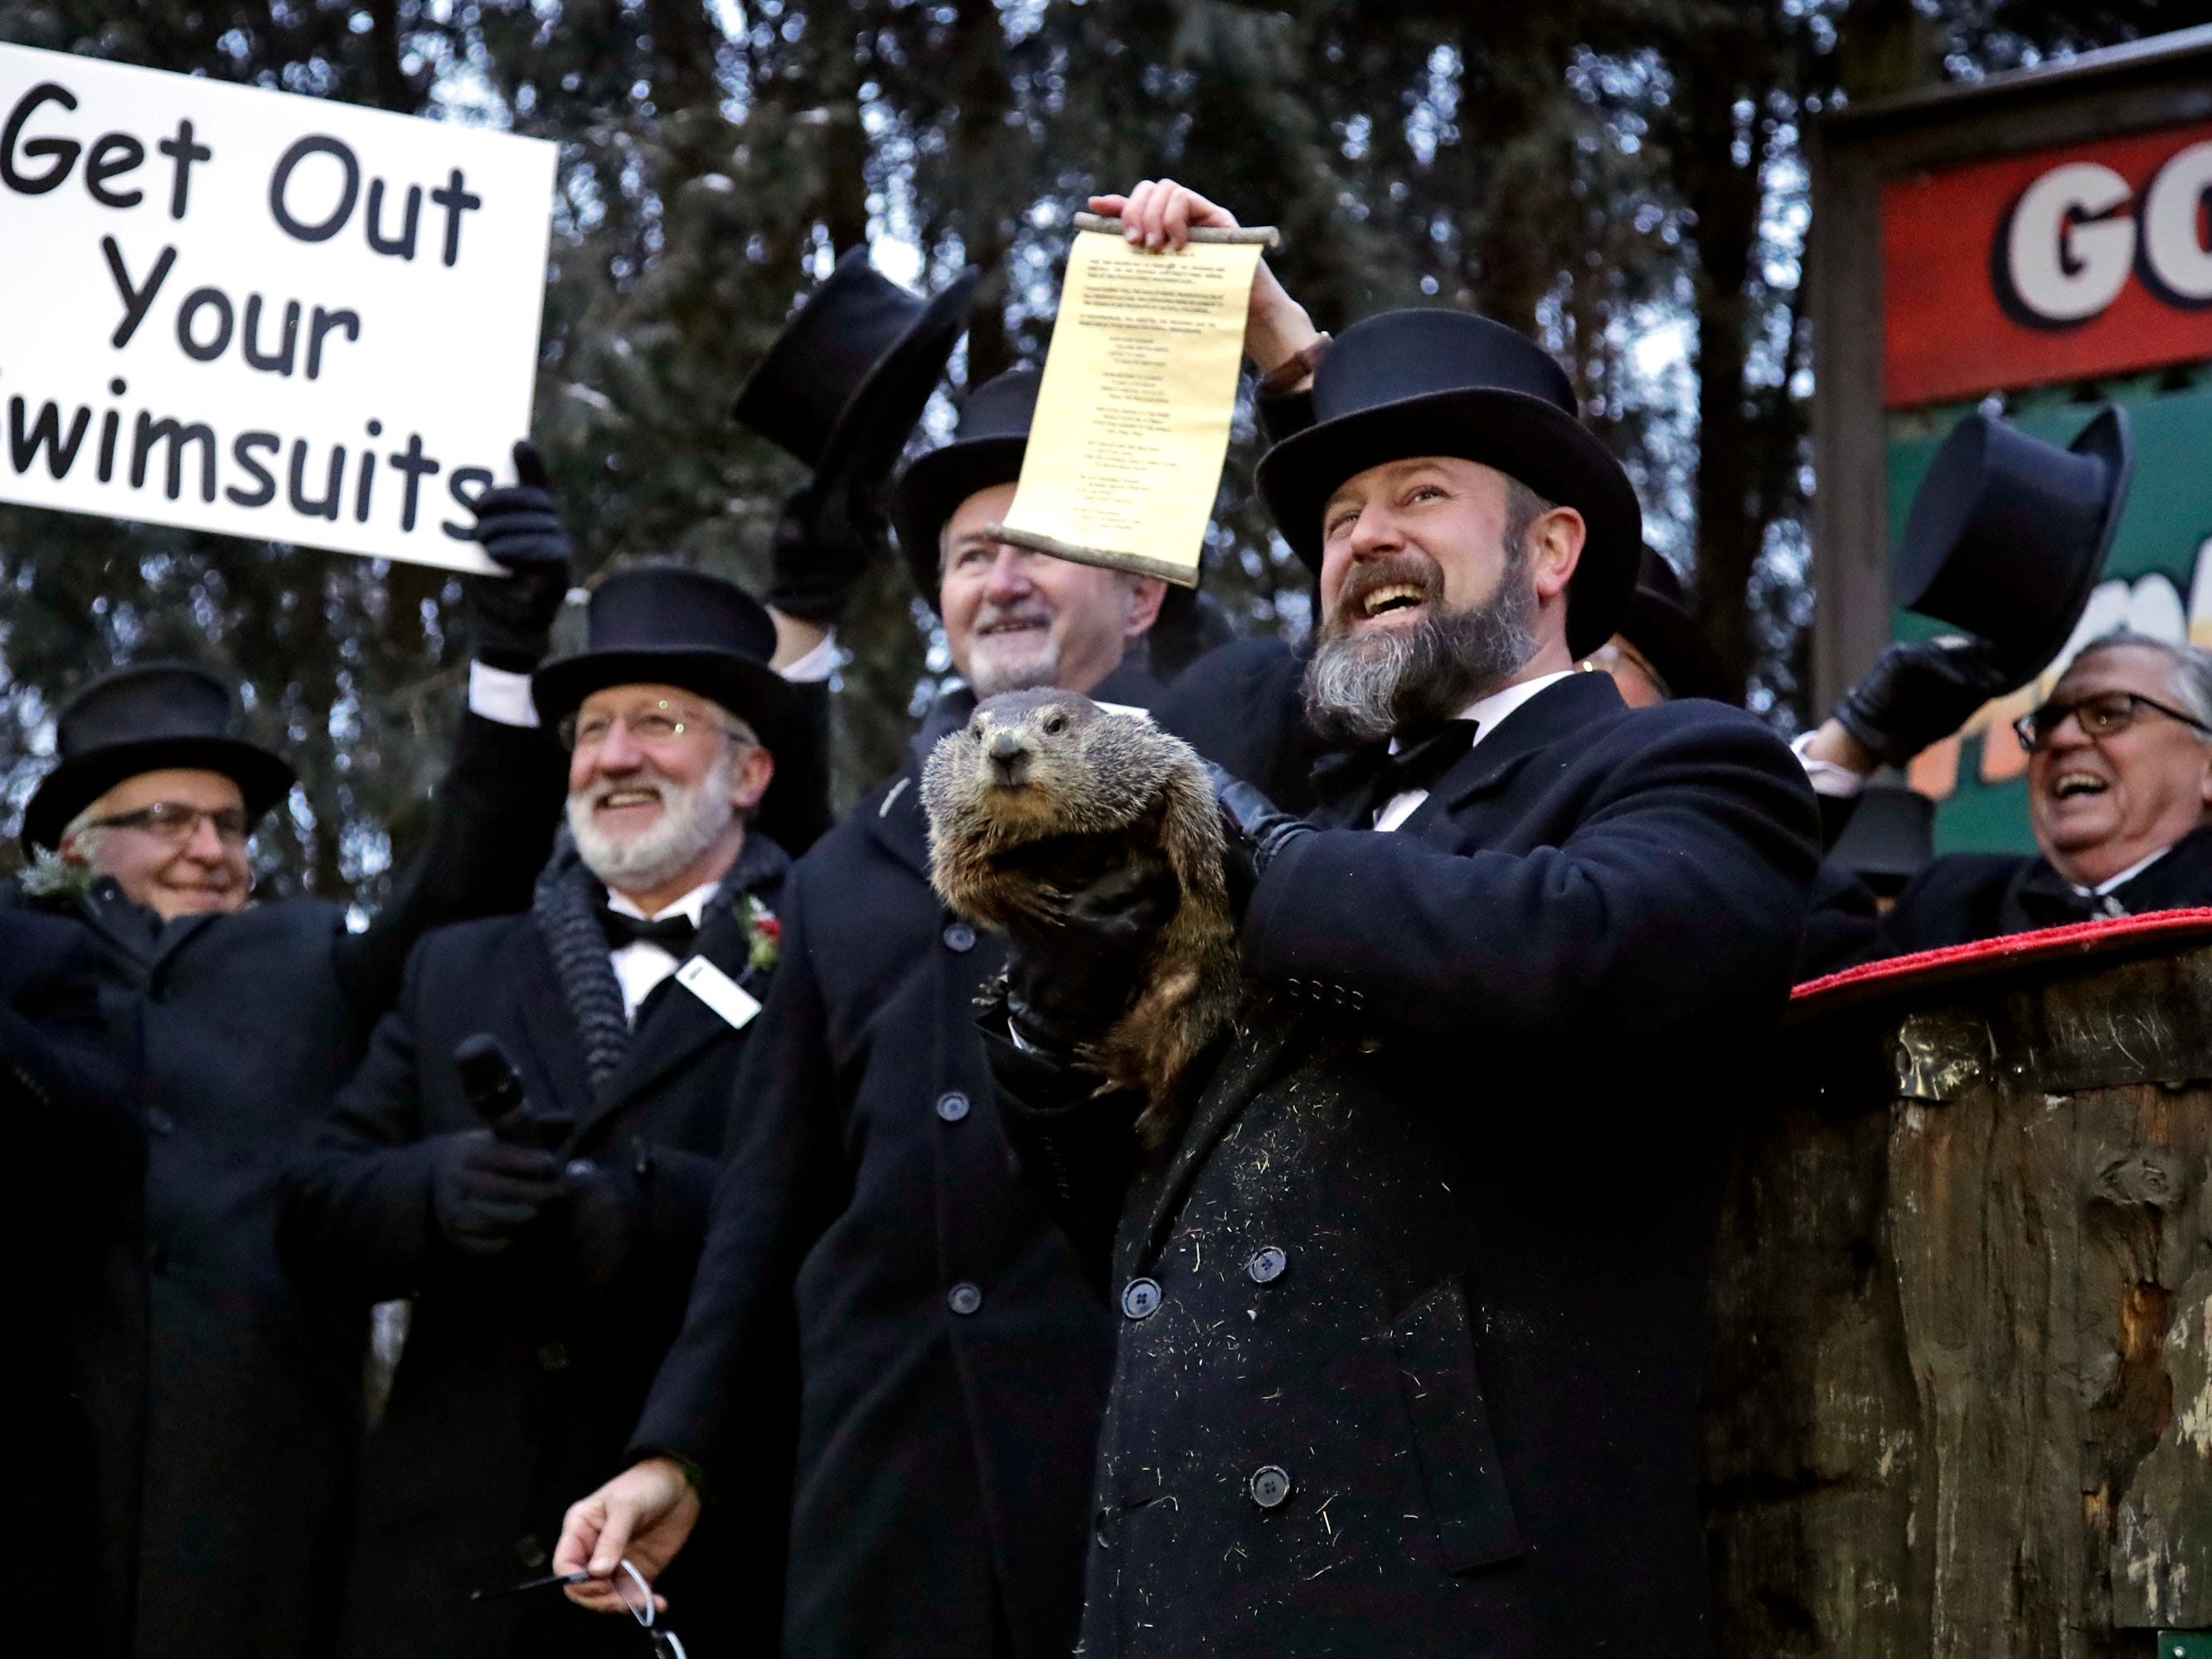 Groundhog Club co-handler Al Dereume, second from right, holds Punxsutawney Phil, the weather prognosticating groundhog, during the 133rd celebration of Groundhog Day on Gobbler's Knob in Punxsutawney, Pa. Saturday, Feb. 2, 2019. Phil's handlers said that the groundhog has forecast an early spring.